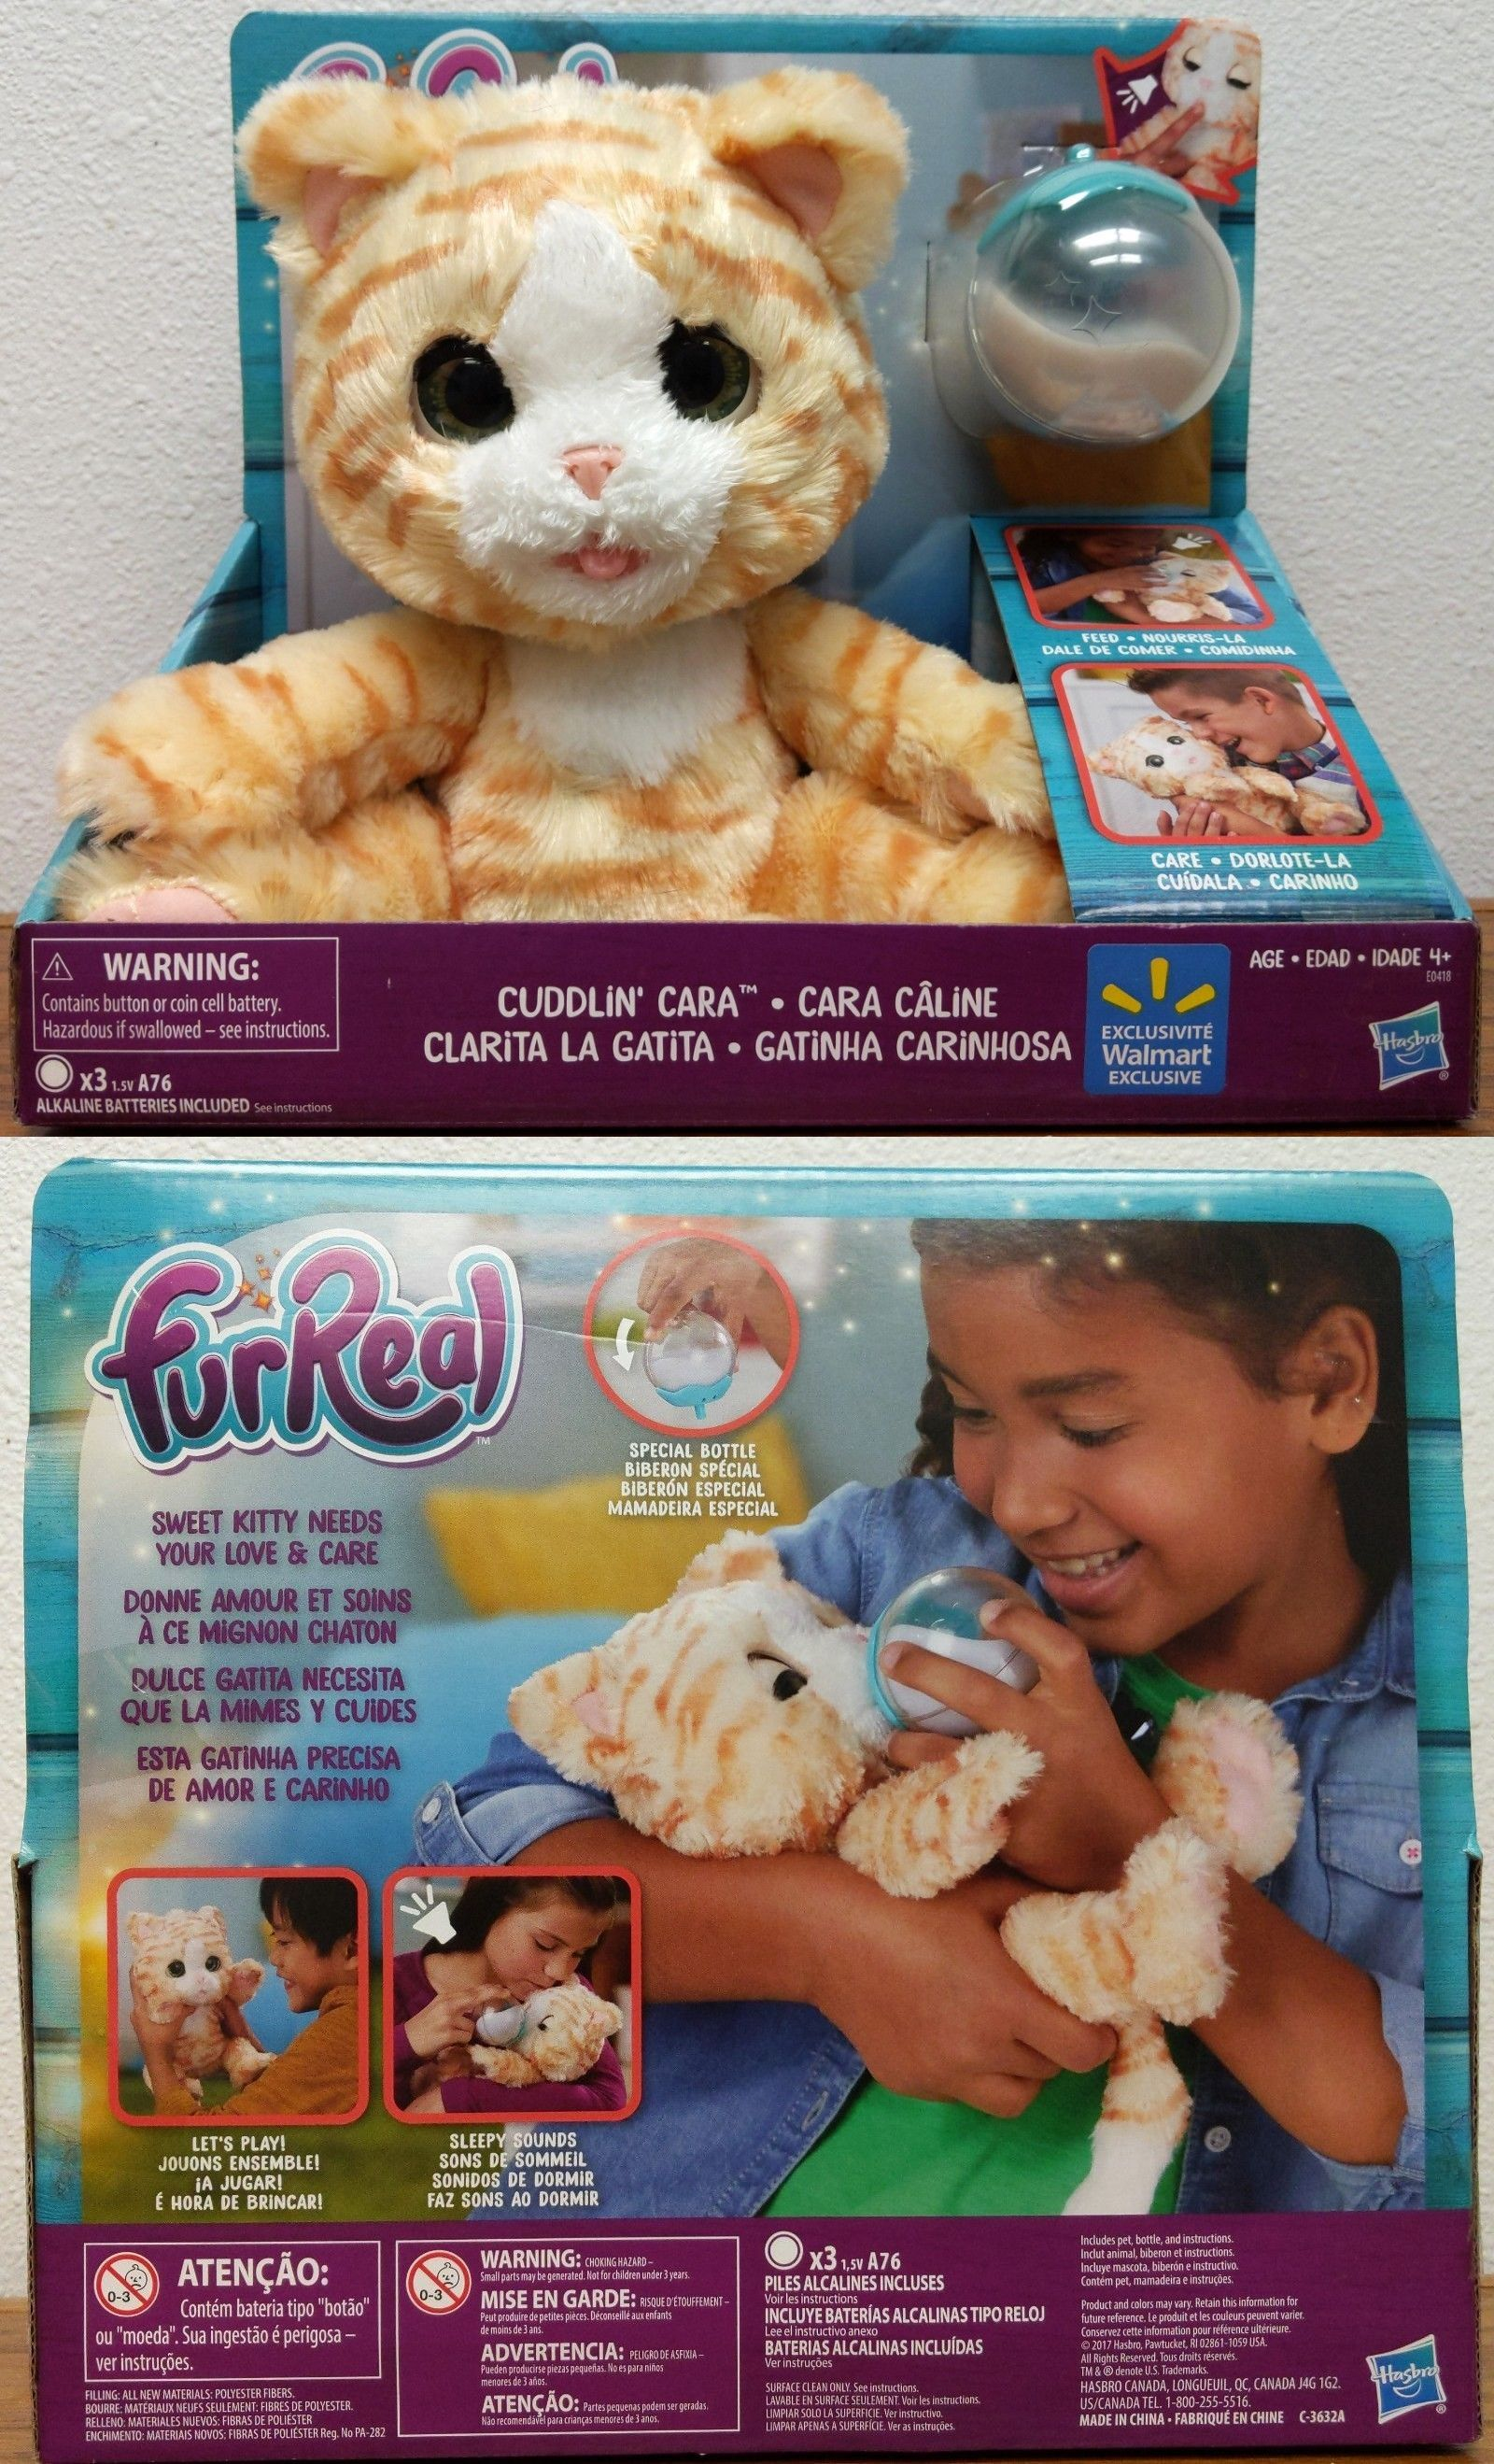 Electronic And Interactive 1082 Furreal Cuddlin Cara Kitten Doll New In Box Buy It Now Only 49 99 O Toddler Girl Gifts Toddler Boy Gifts Birthday Toys